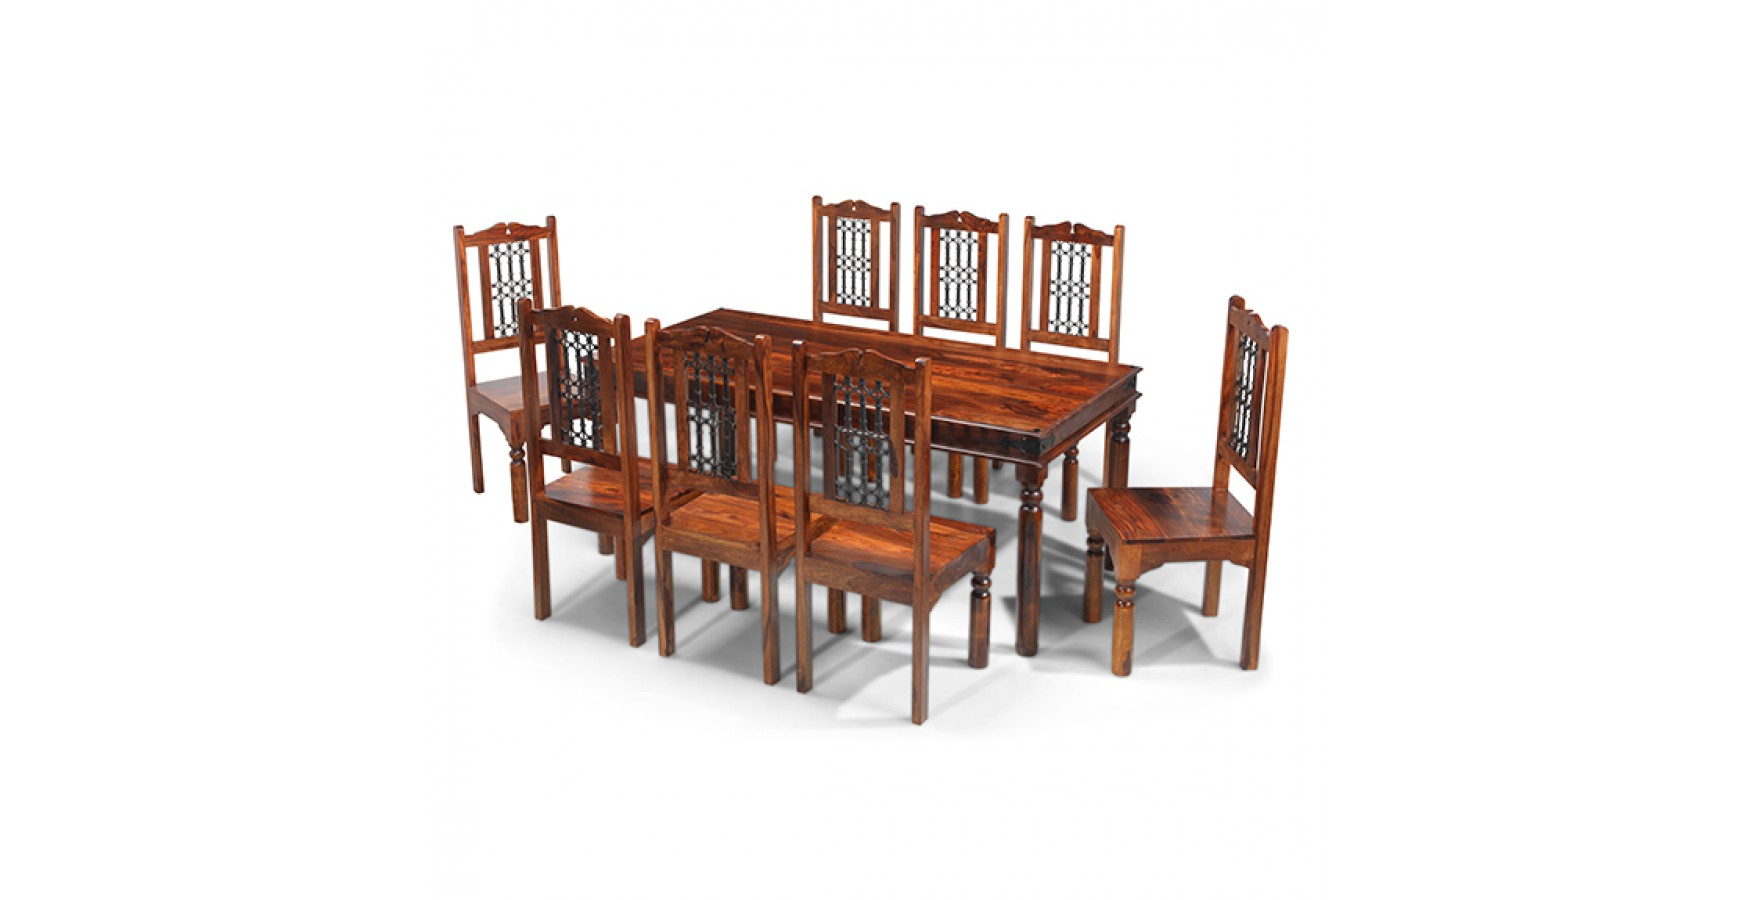 8 Chair Dining Set Jali Sheesham 180 Cm Thakat Dining Table And 8 Chairs